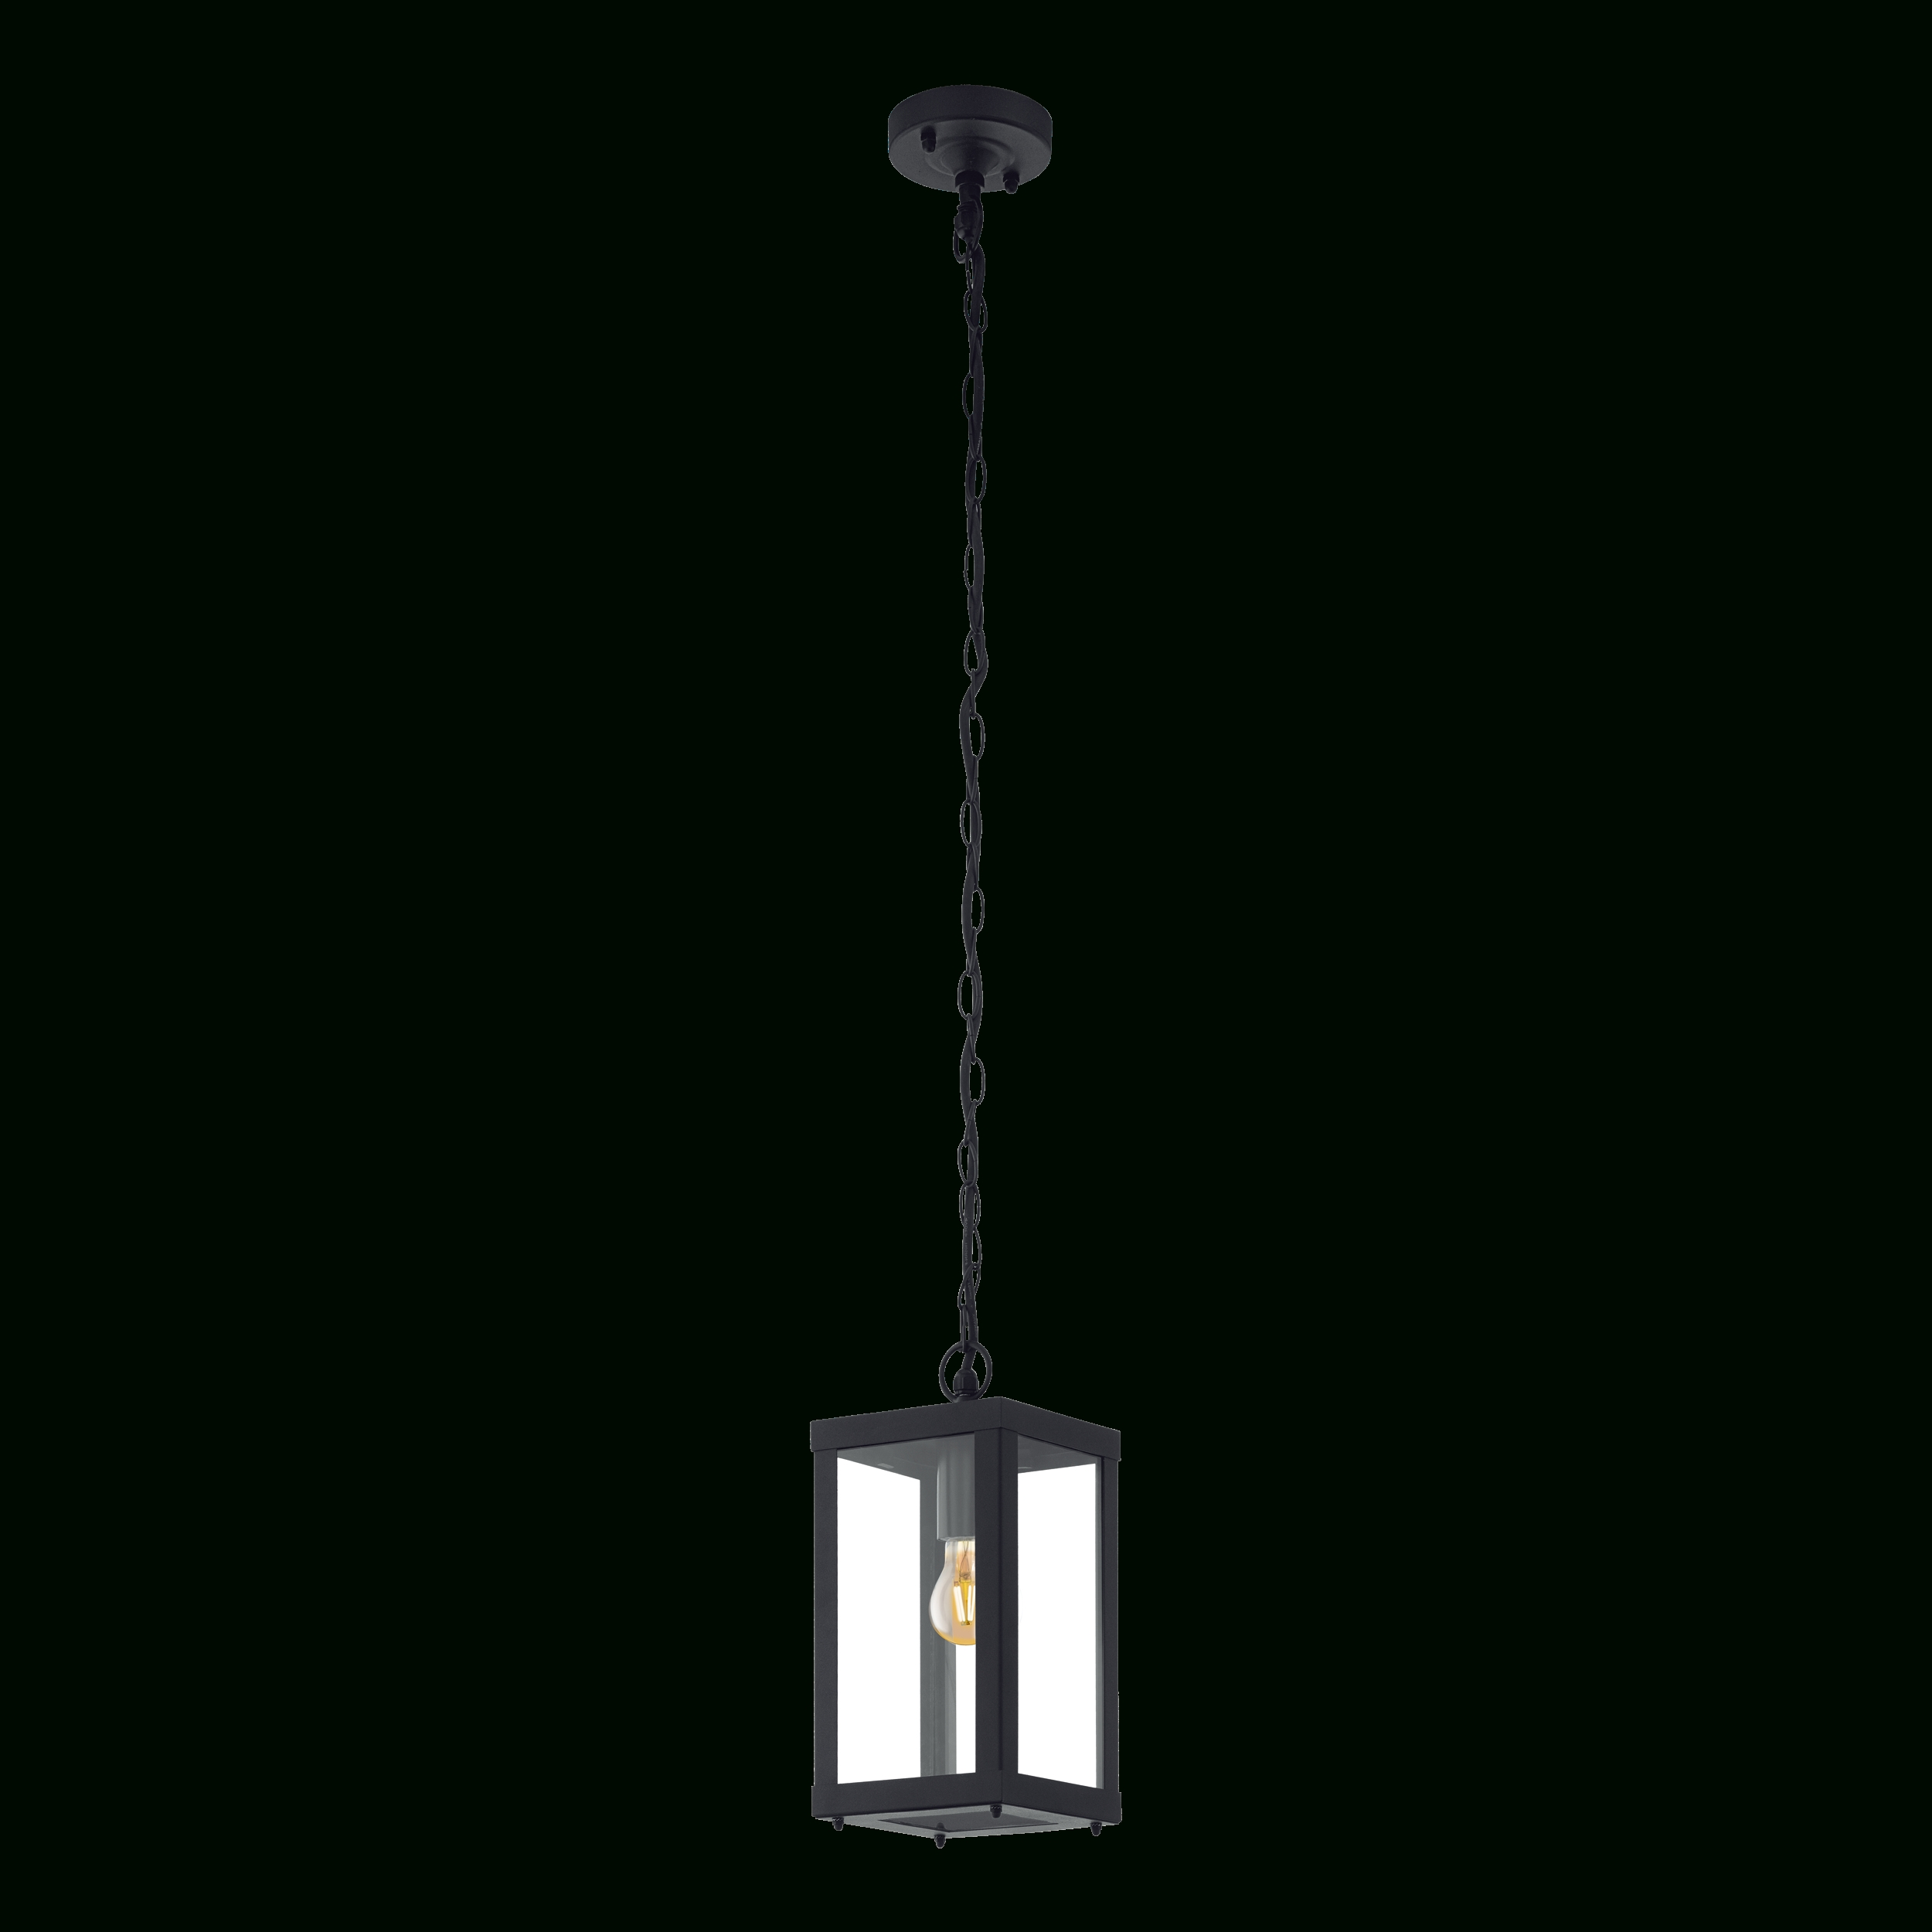 Eglo Outdoor Lighting In Favorite 94788 / Alamonte 1 / Outdoor Lighting / Main Collections / Products (View 4 of 20)